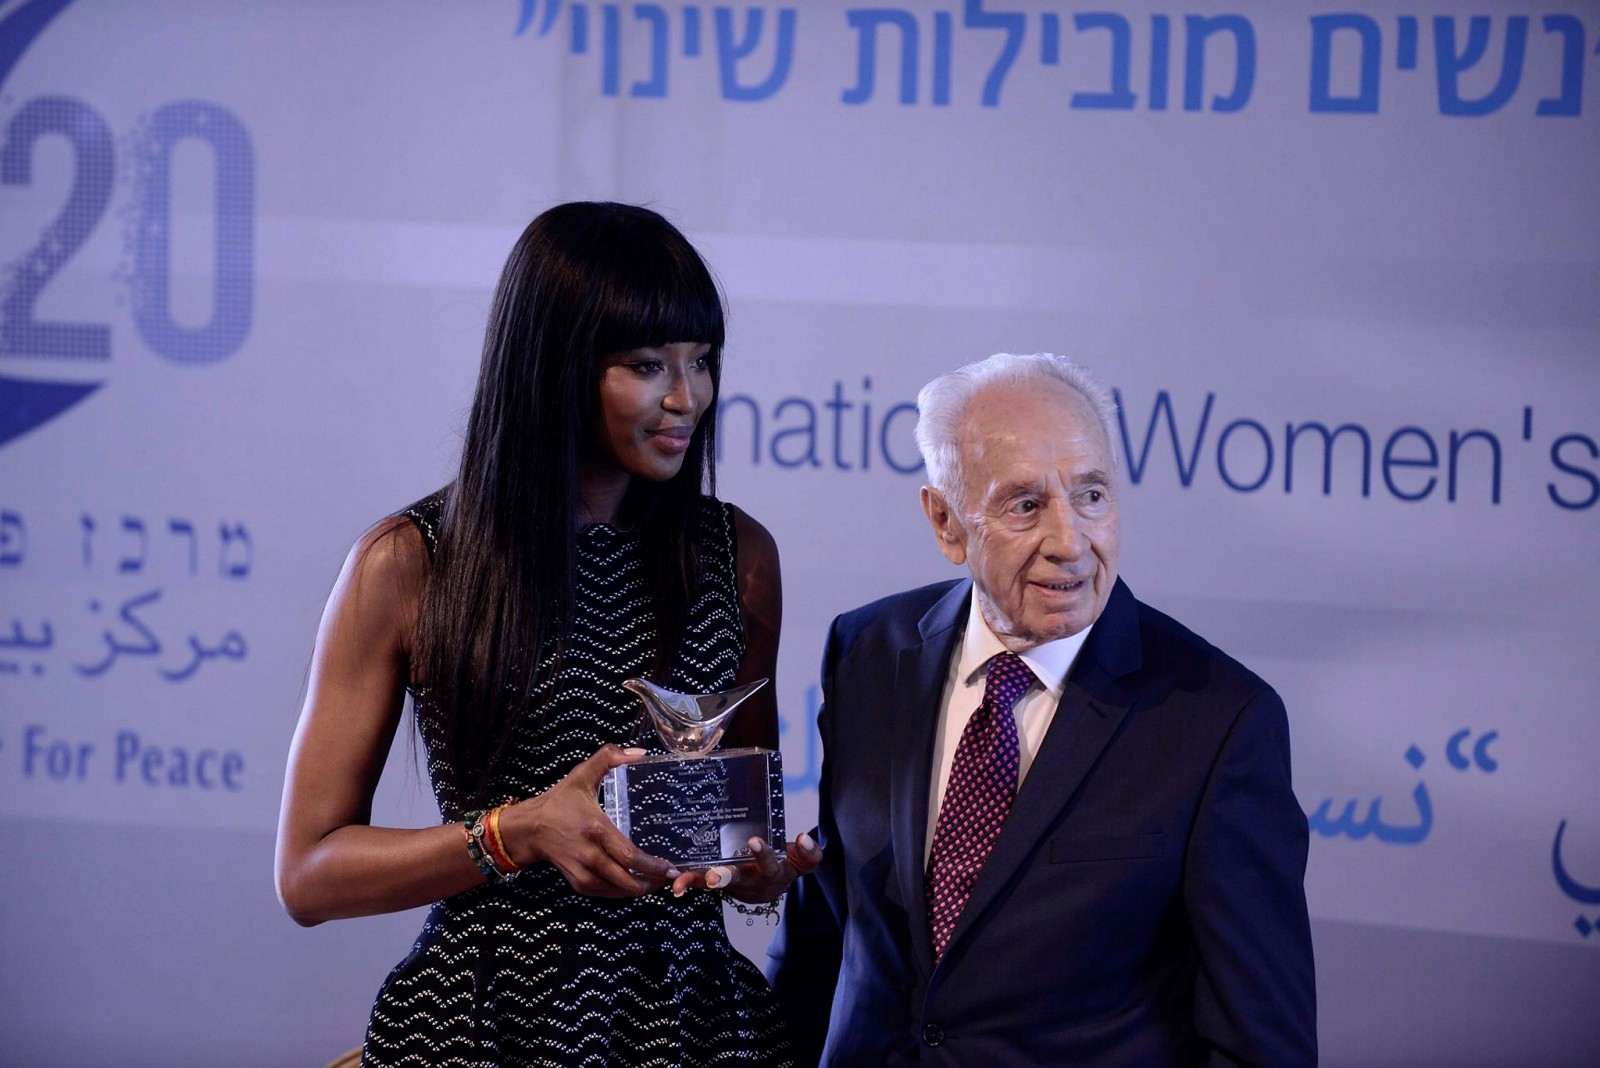 Model Naomi Campbell met former Israeli president Shimon Peres for the International Woman's Day, at Peres Center for Peace in Jaffa, earlier this year. Photo by Tomer Neuberg/Flash90